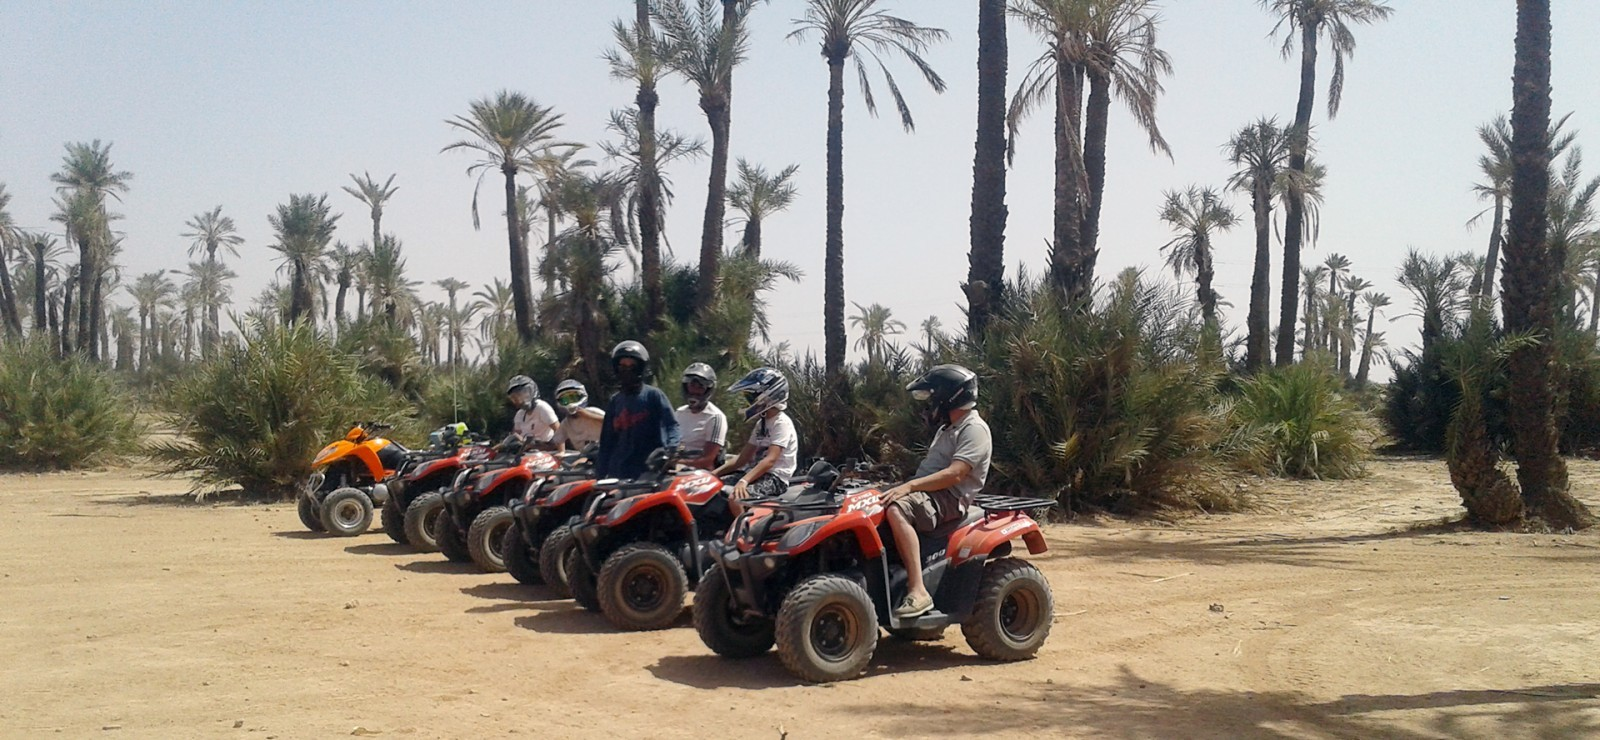 CHERIF EVENTS Balade Quad Palmeraie Barage